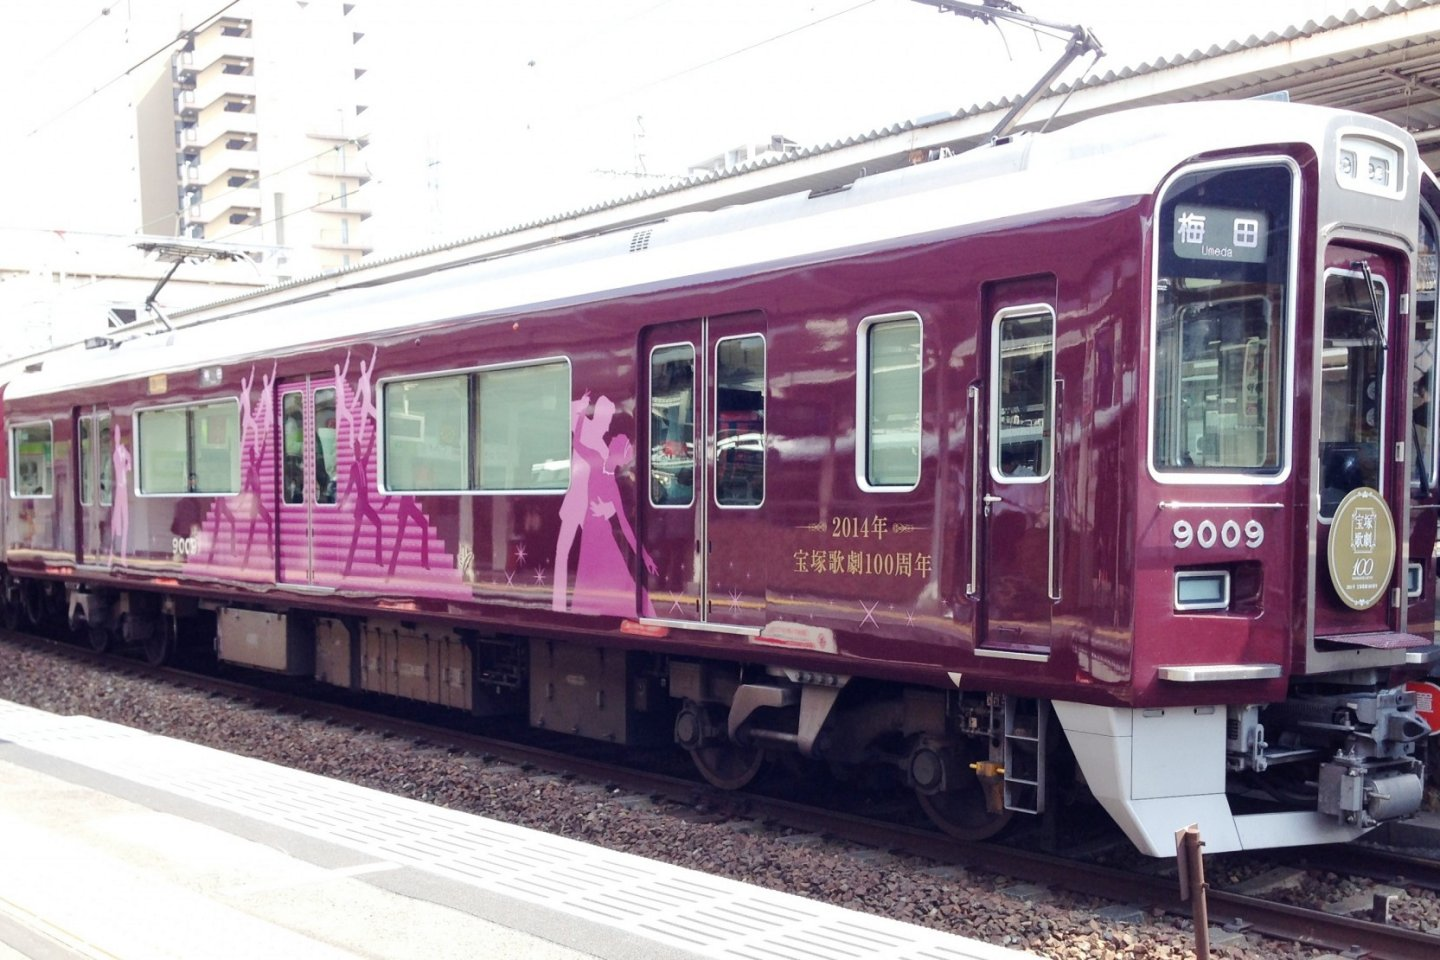 Hankyu trainconnects with the airport monorail for the journey to Kyoto, with a change at Juso